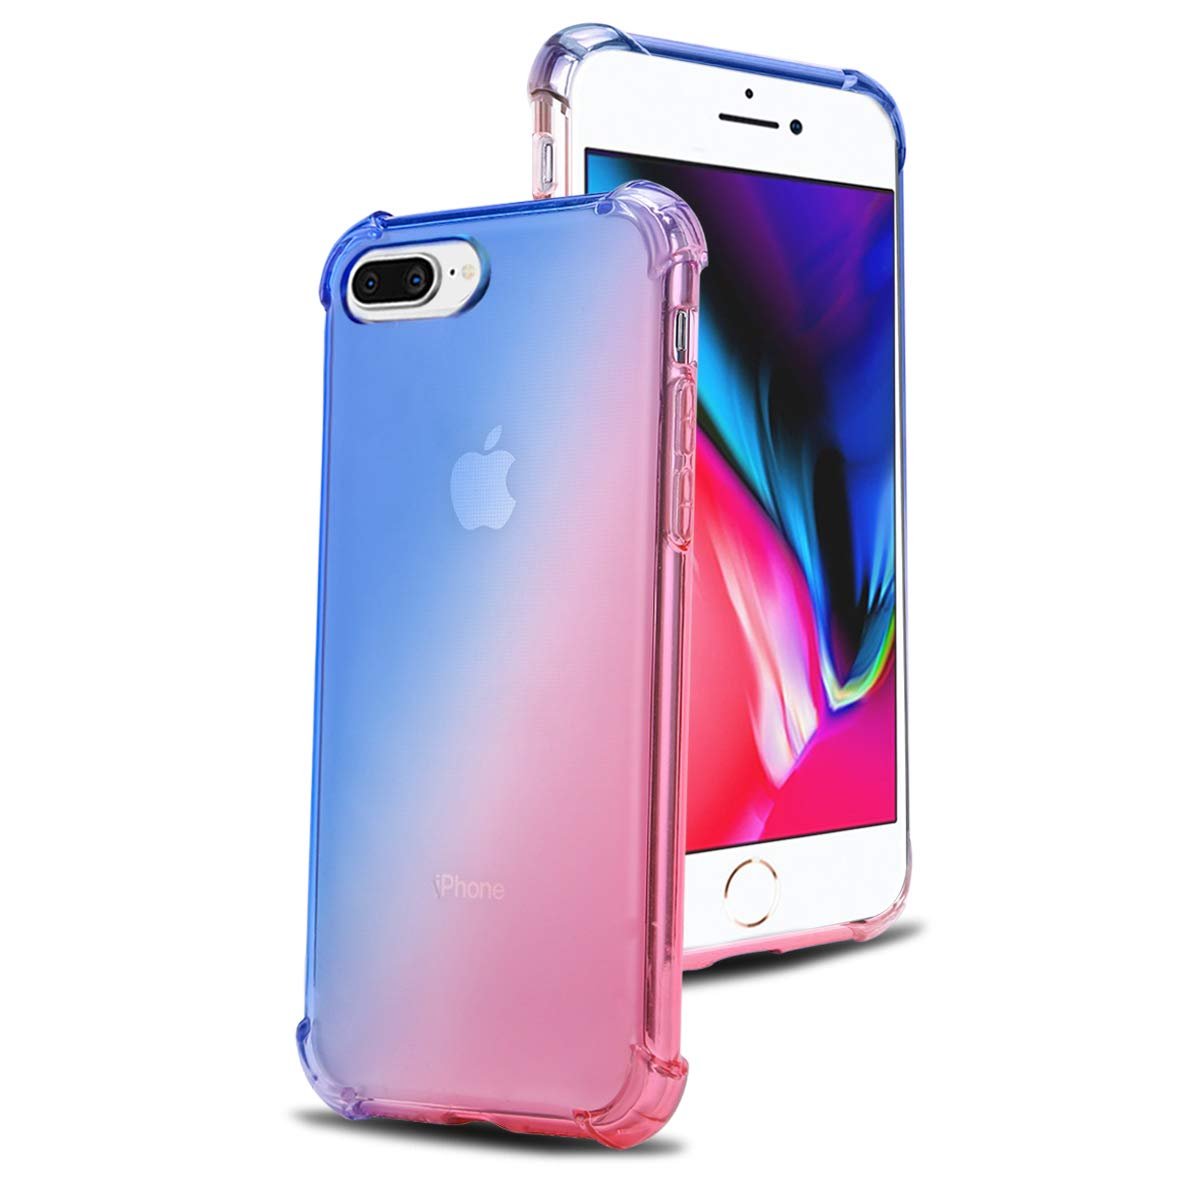 reputable site 2ef1a ab53c Airror Phone Case Compatible with iPhone 8 Plus/iPhone 7 Plus, Clear  Multi-Color Gradients Slim Case, Impact Resistant Protective Soft TPU Cover  [ ...